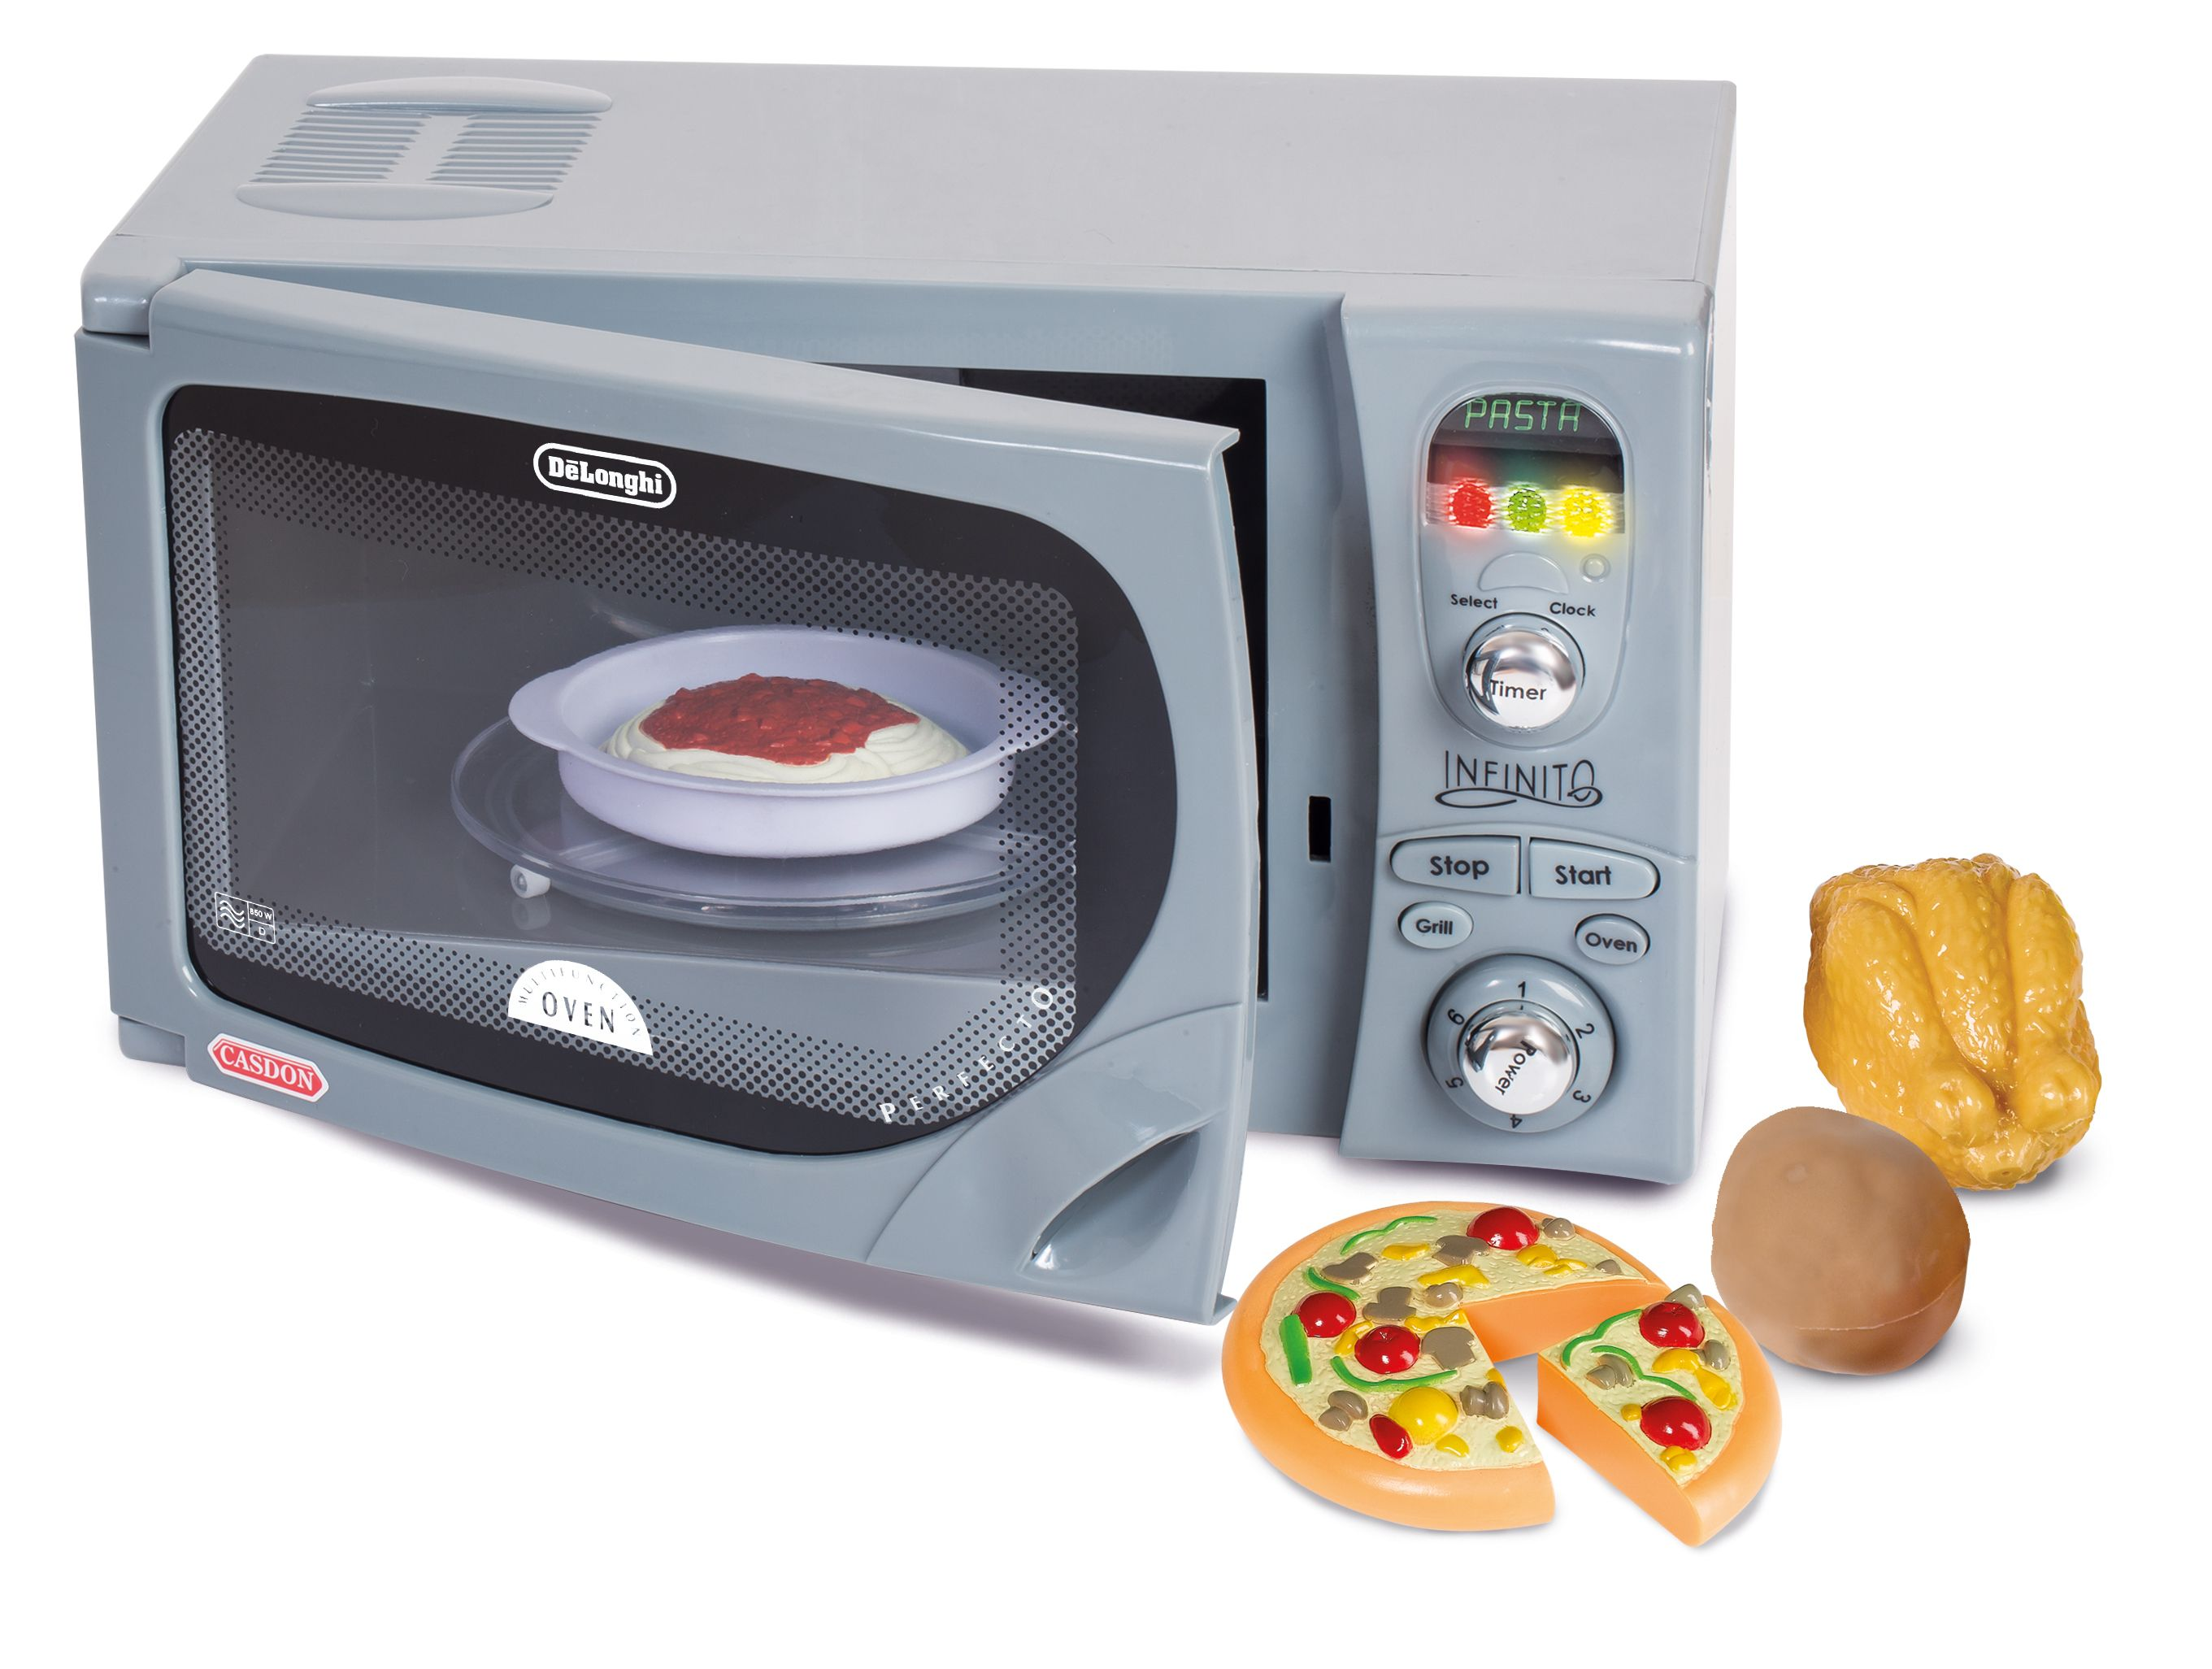 Toys In 2020 Microwave Countertop Microwave Oven Kids Pretend Play